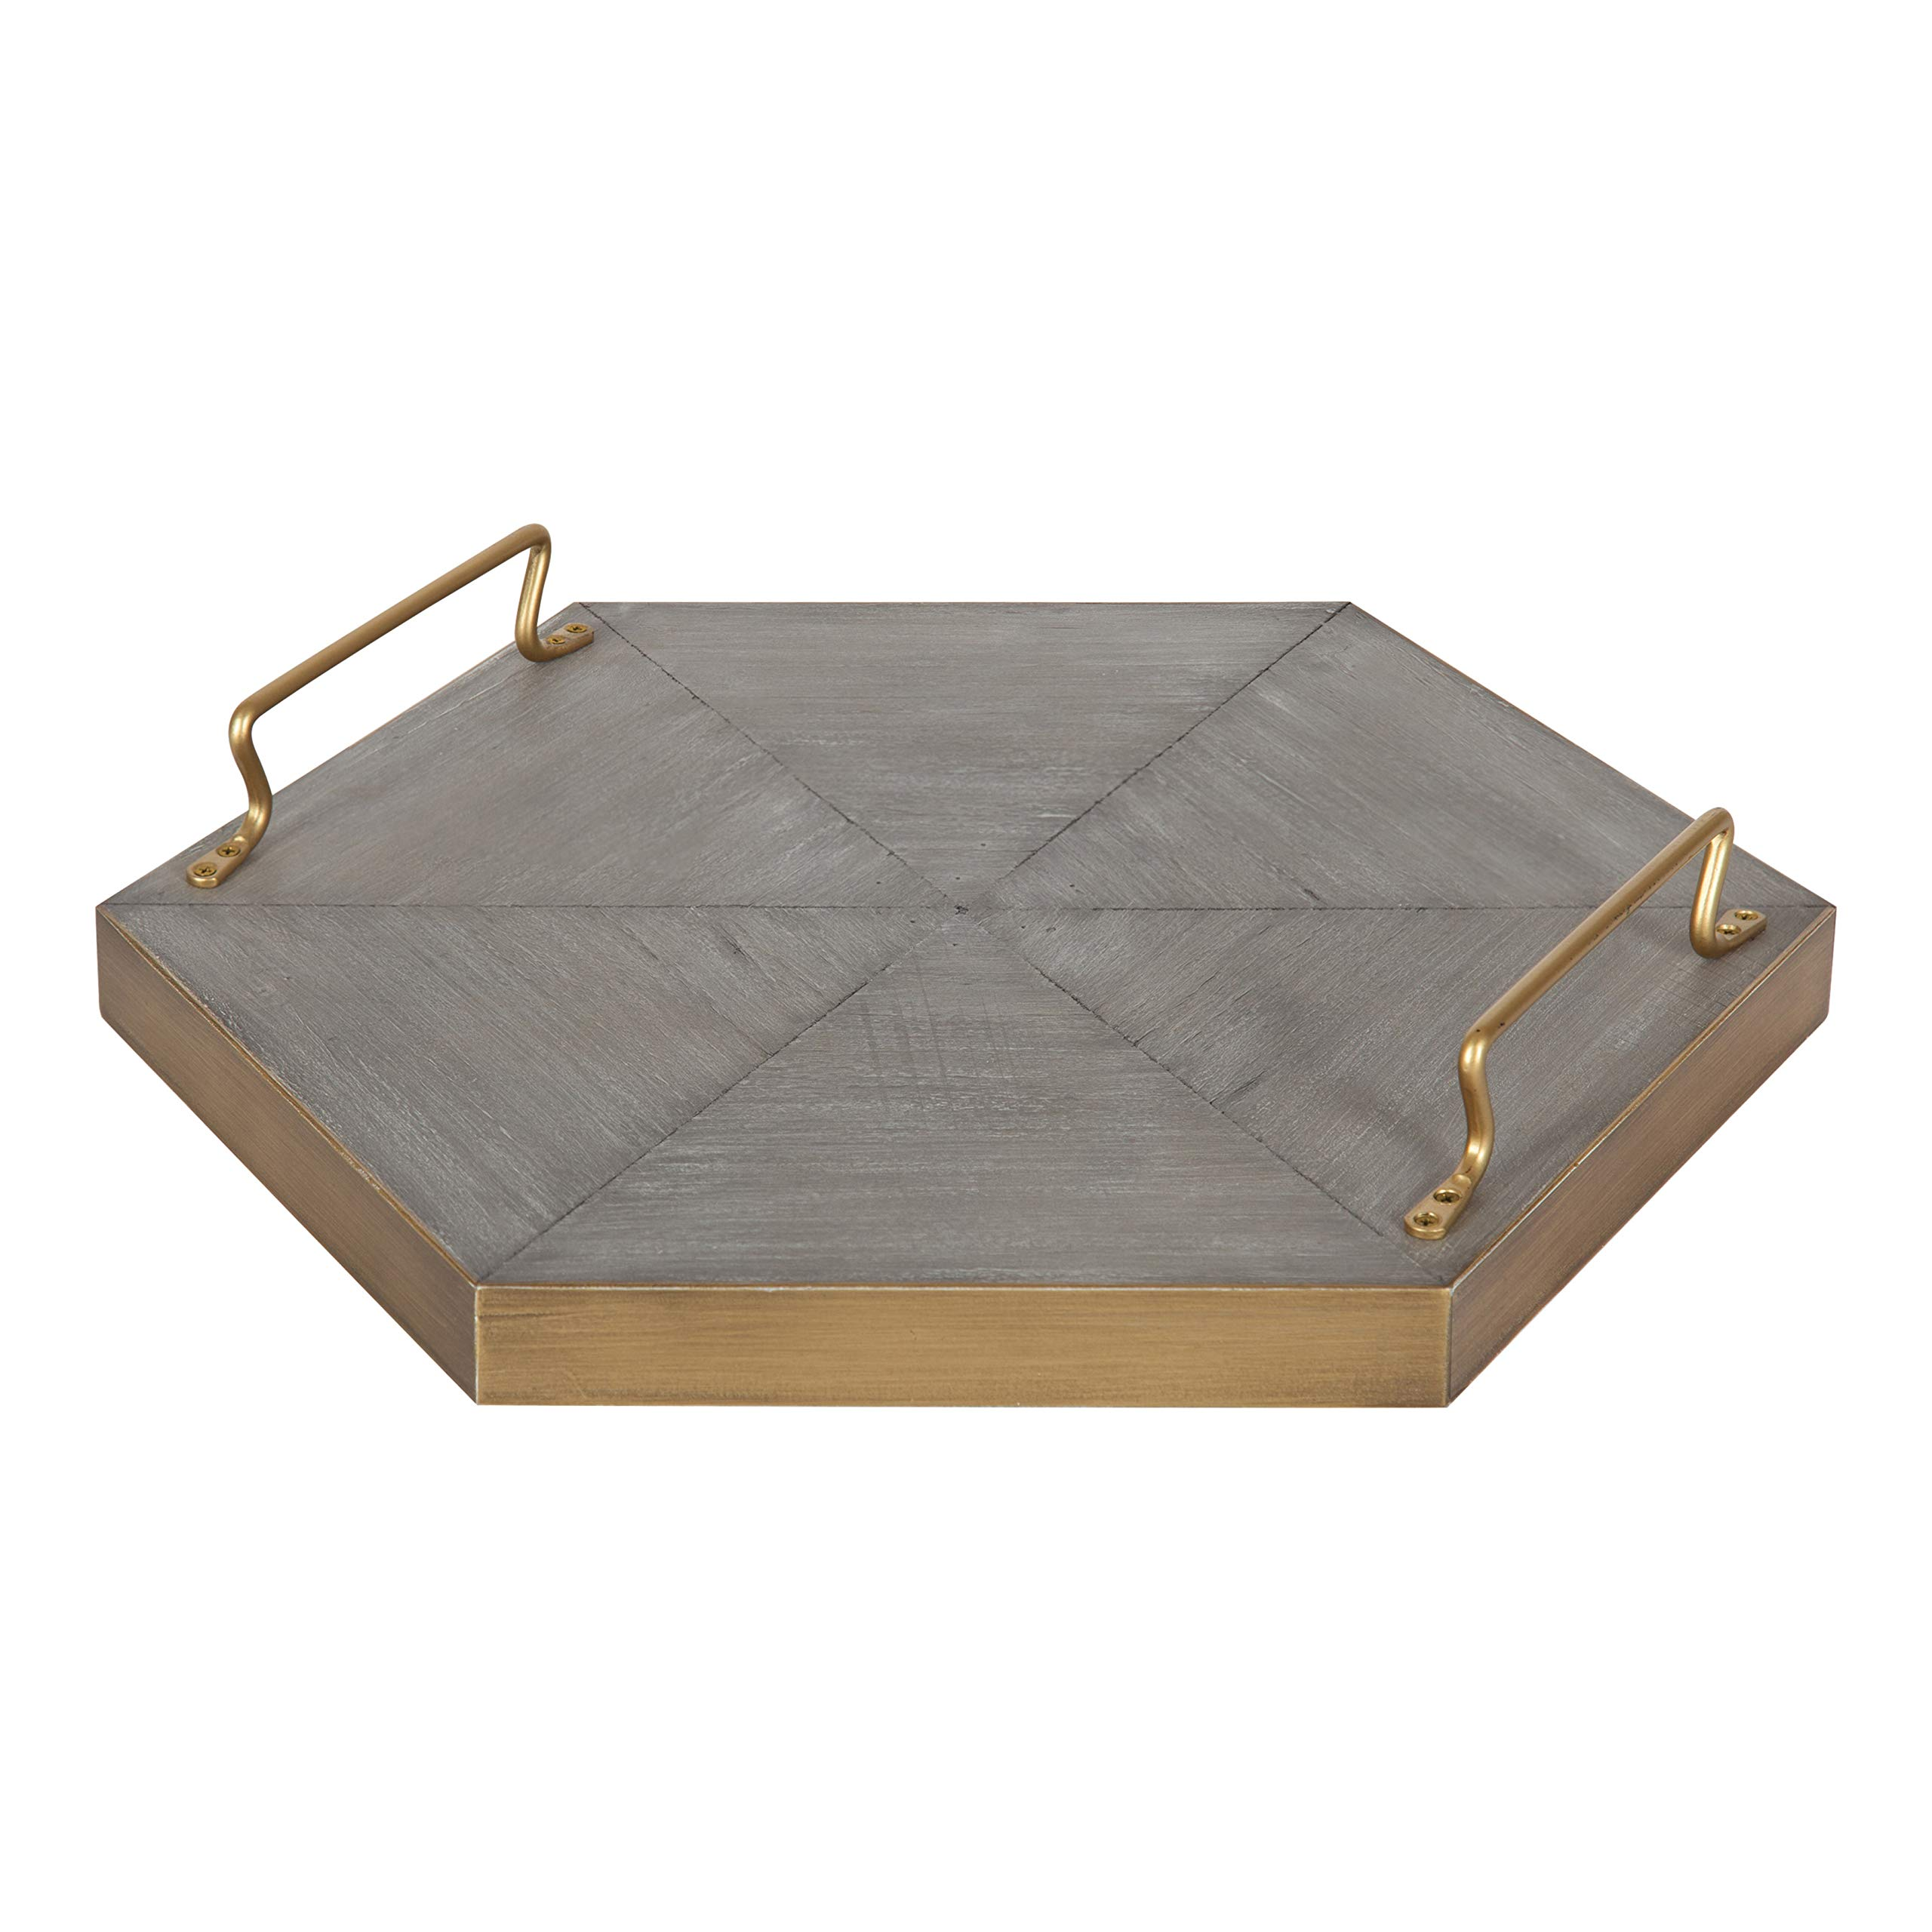 Kate and Laurel Sade Decorative Hexagon Tray with Handles, 16'', Concrete Gray and Gold, Modern Tray for Ottoman, Centerpieces, Or Bathroom and Bedroom Decor by Kate and Laurel